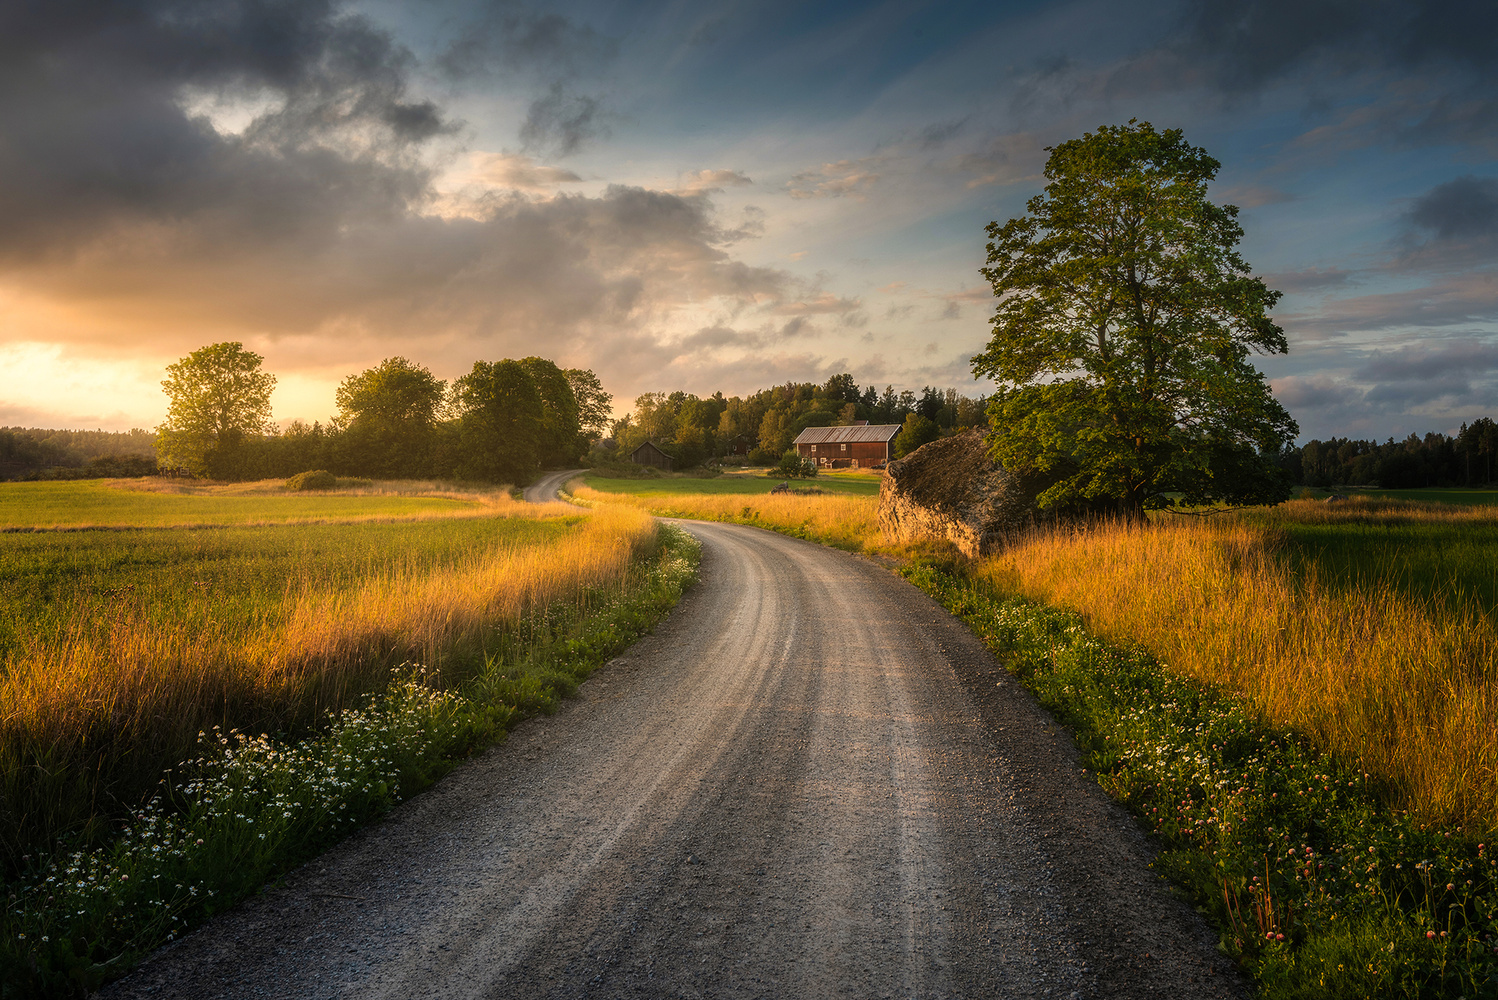 Countryside road by Philip Slotte